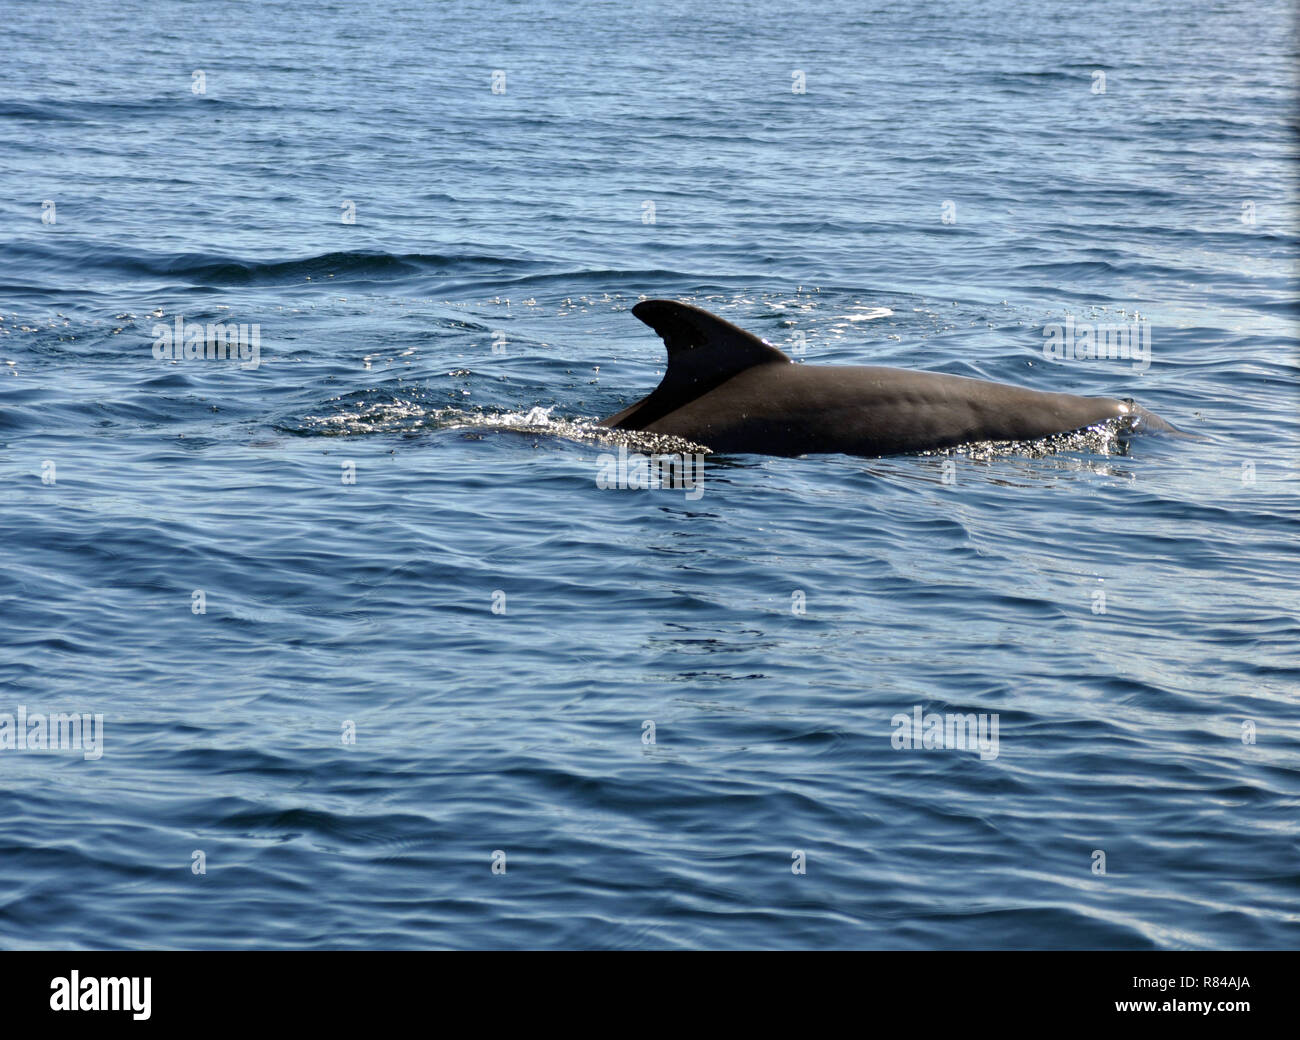 The back of a Dolphin swimming in the Ocean - Stock Image